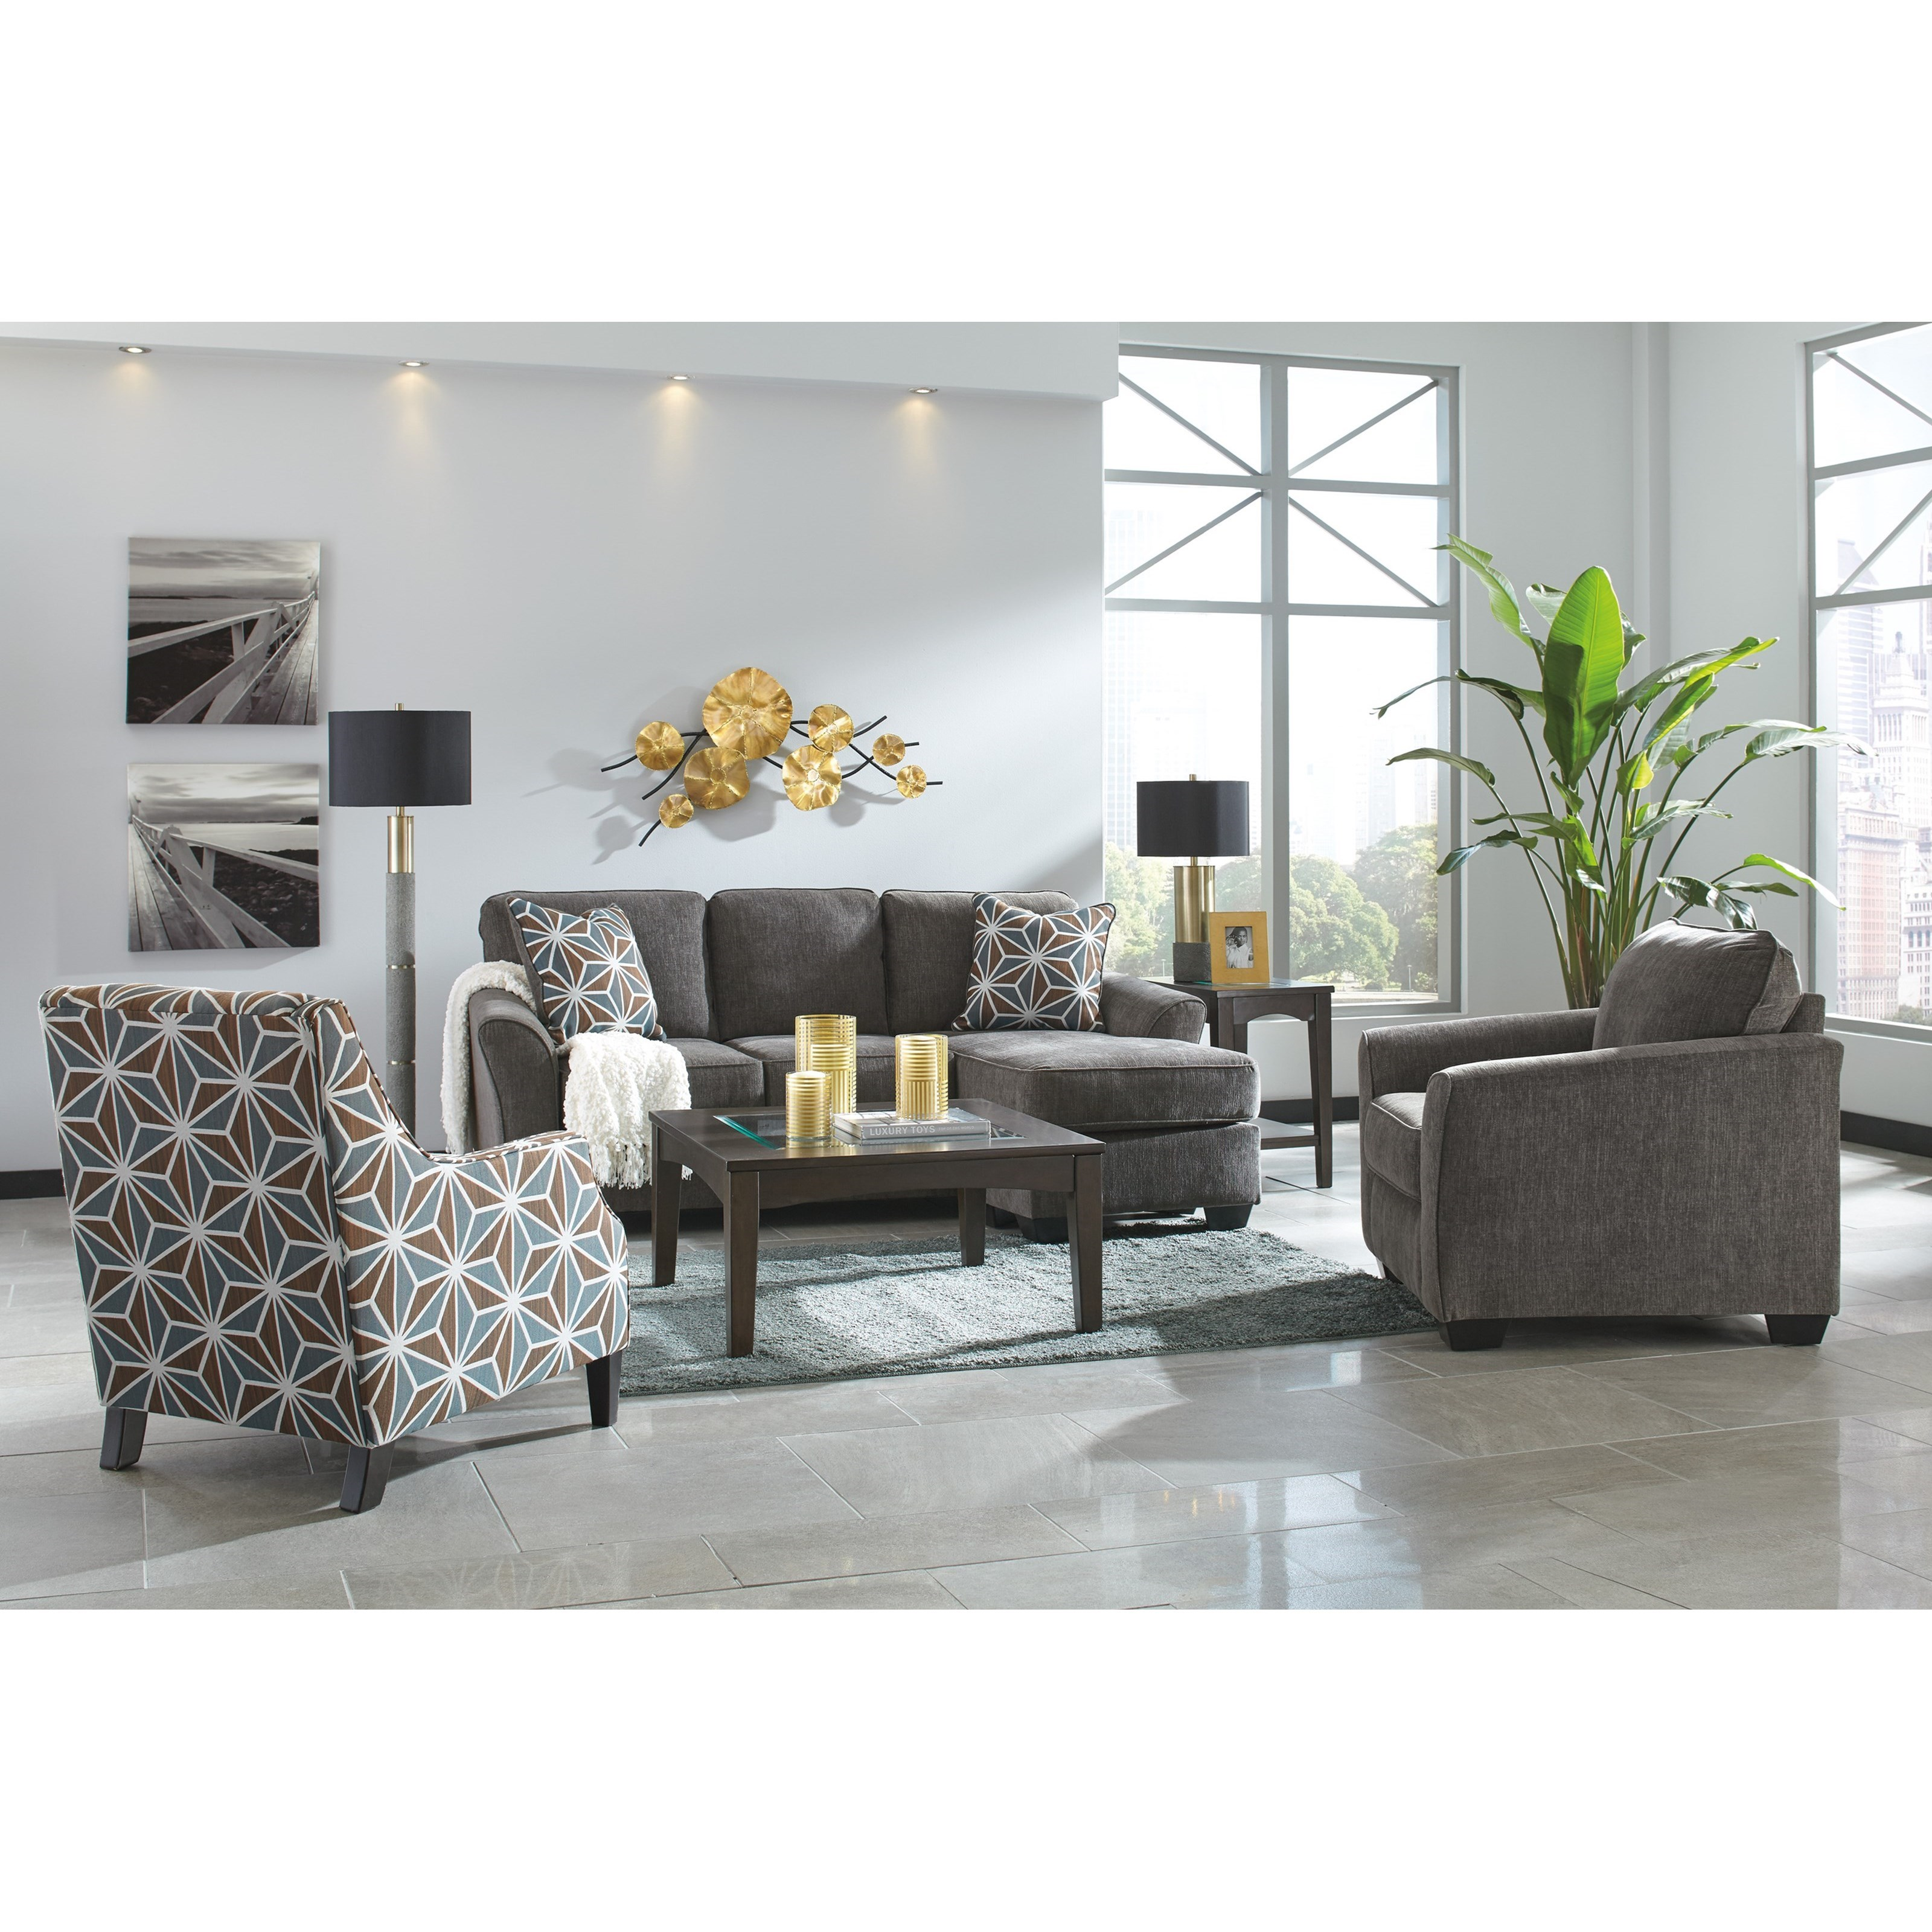 1050160 Ashley Furniture Kexlor Living Room Accent Chair: Benchcraft By Ashley Brise Contemporary Accent Chair In